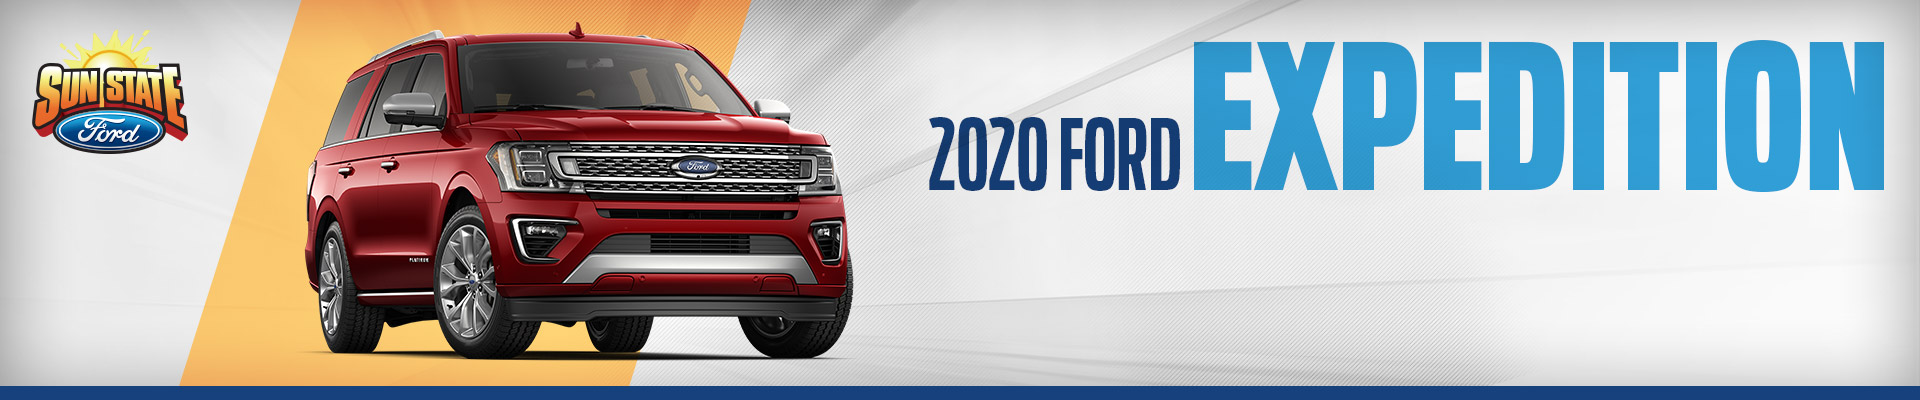 2020 Ford Expedition - Sun State Ford - Orlando, FL